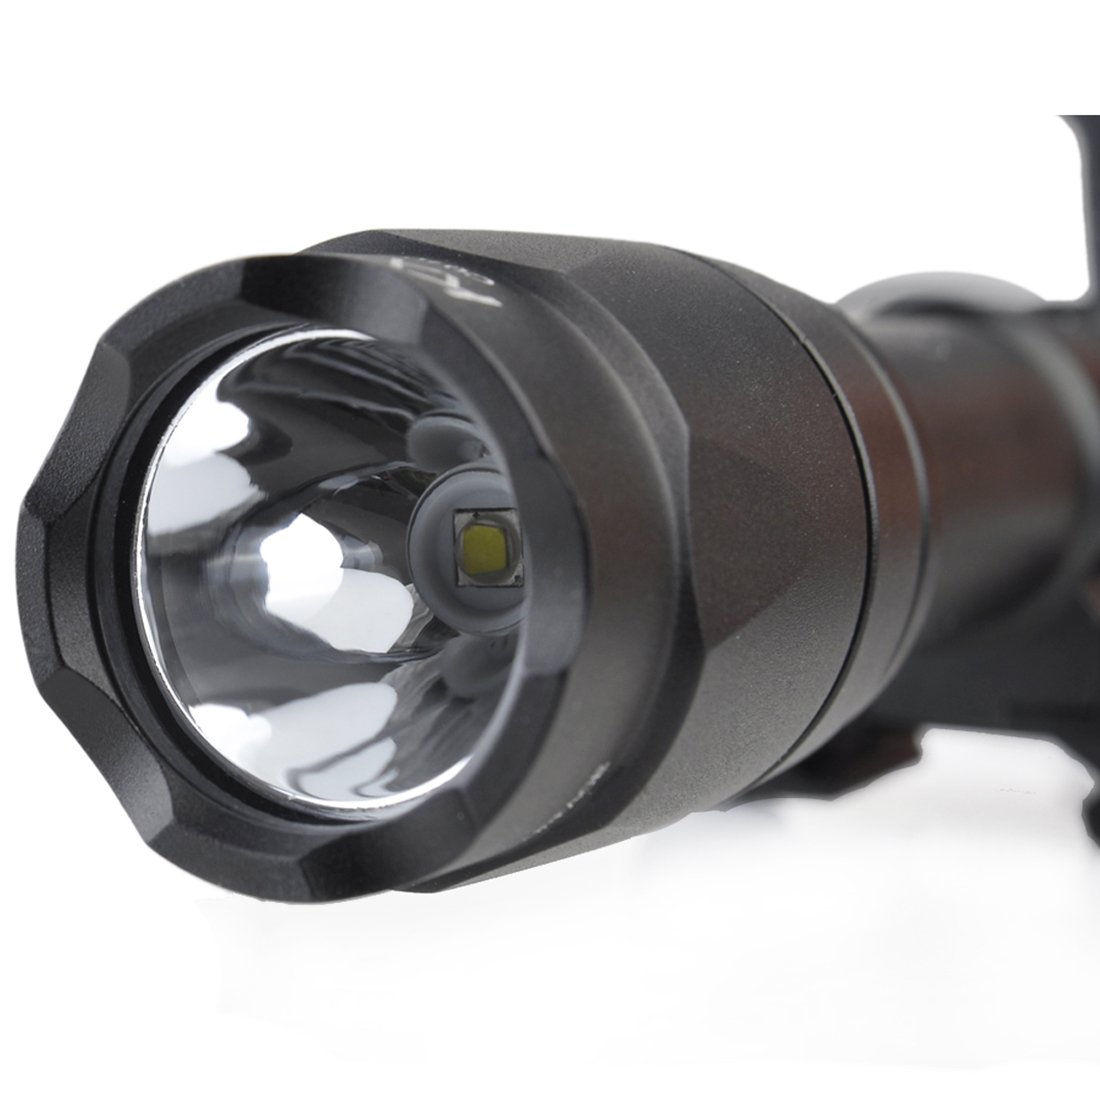 купить Surwish Tactical M600C Scout Flashlight LED Full Version for Nerf/for Airsoft Group Games - Black/Tan по цене 2845.02 рублей